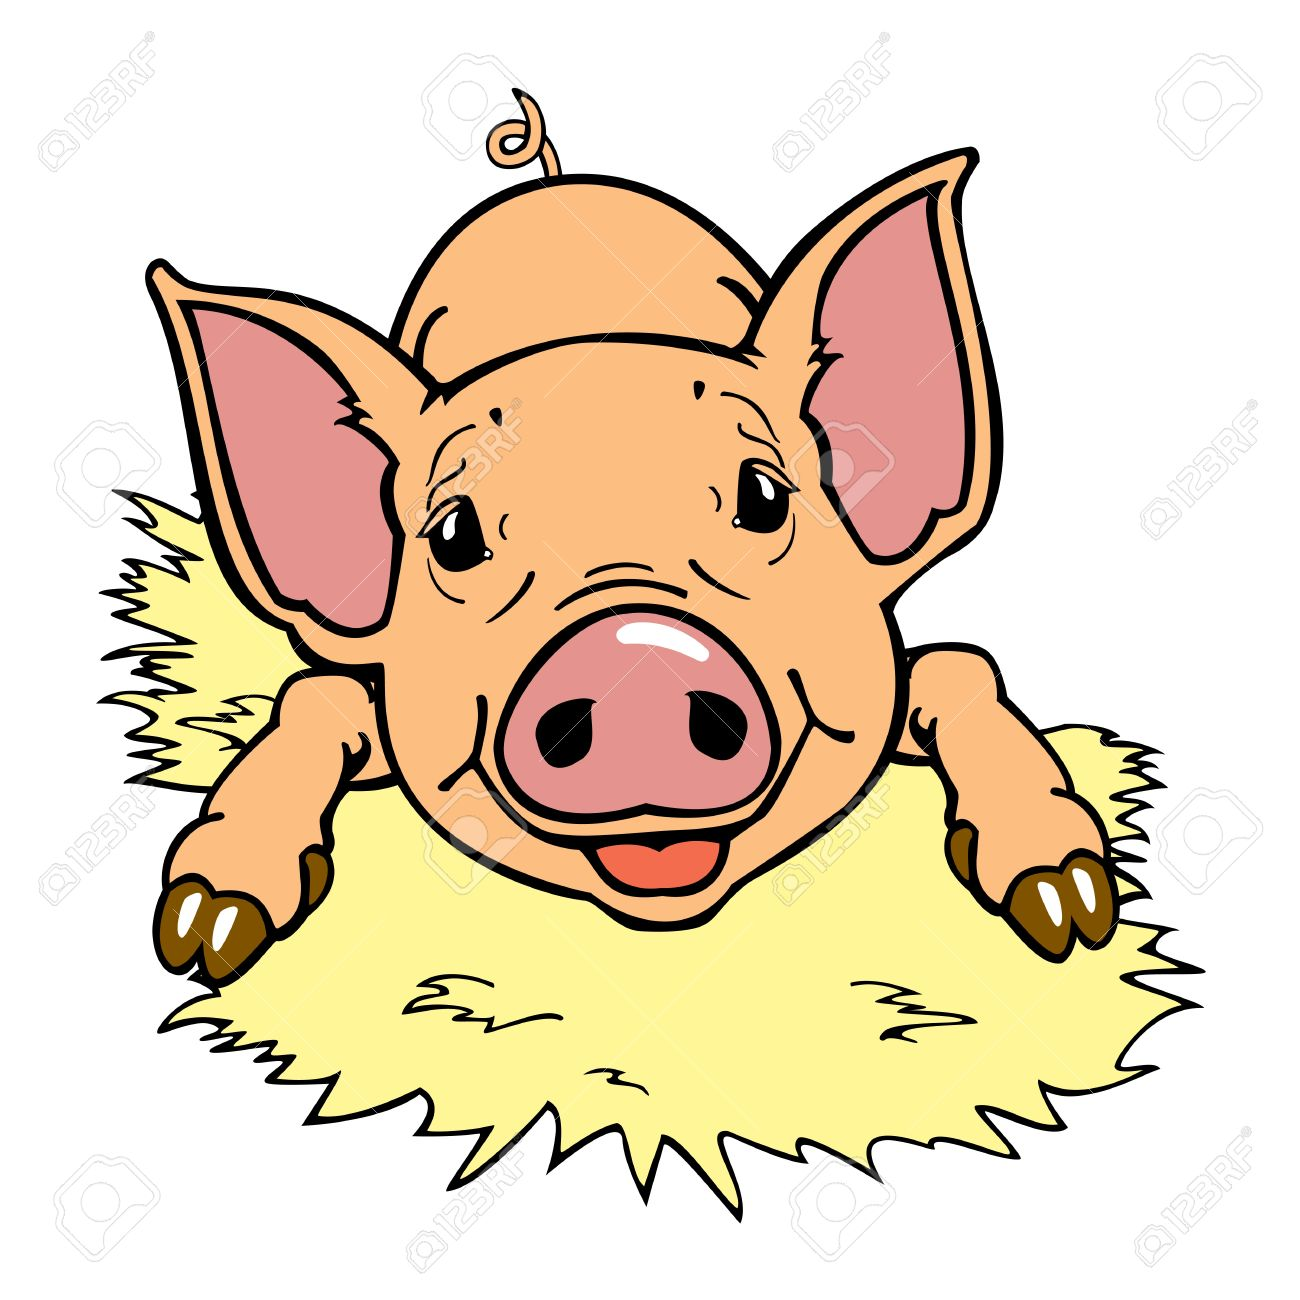 9,629 Snout Stock Vector Illustration And Royalty Free Snout Clipart.